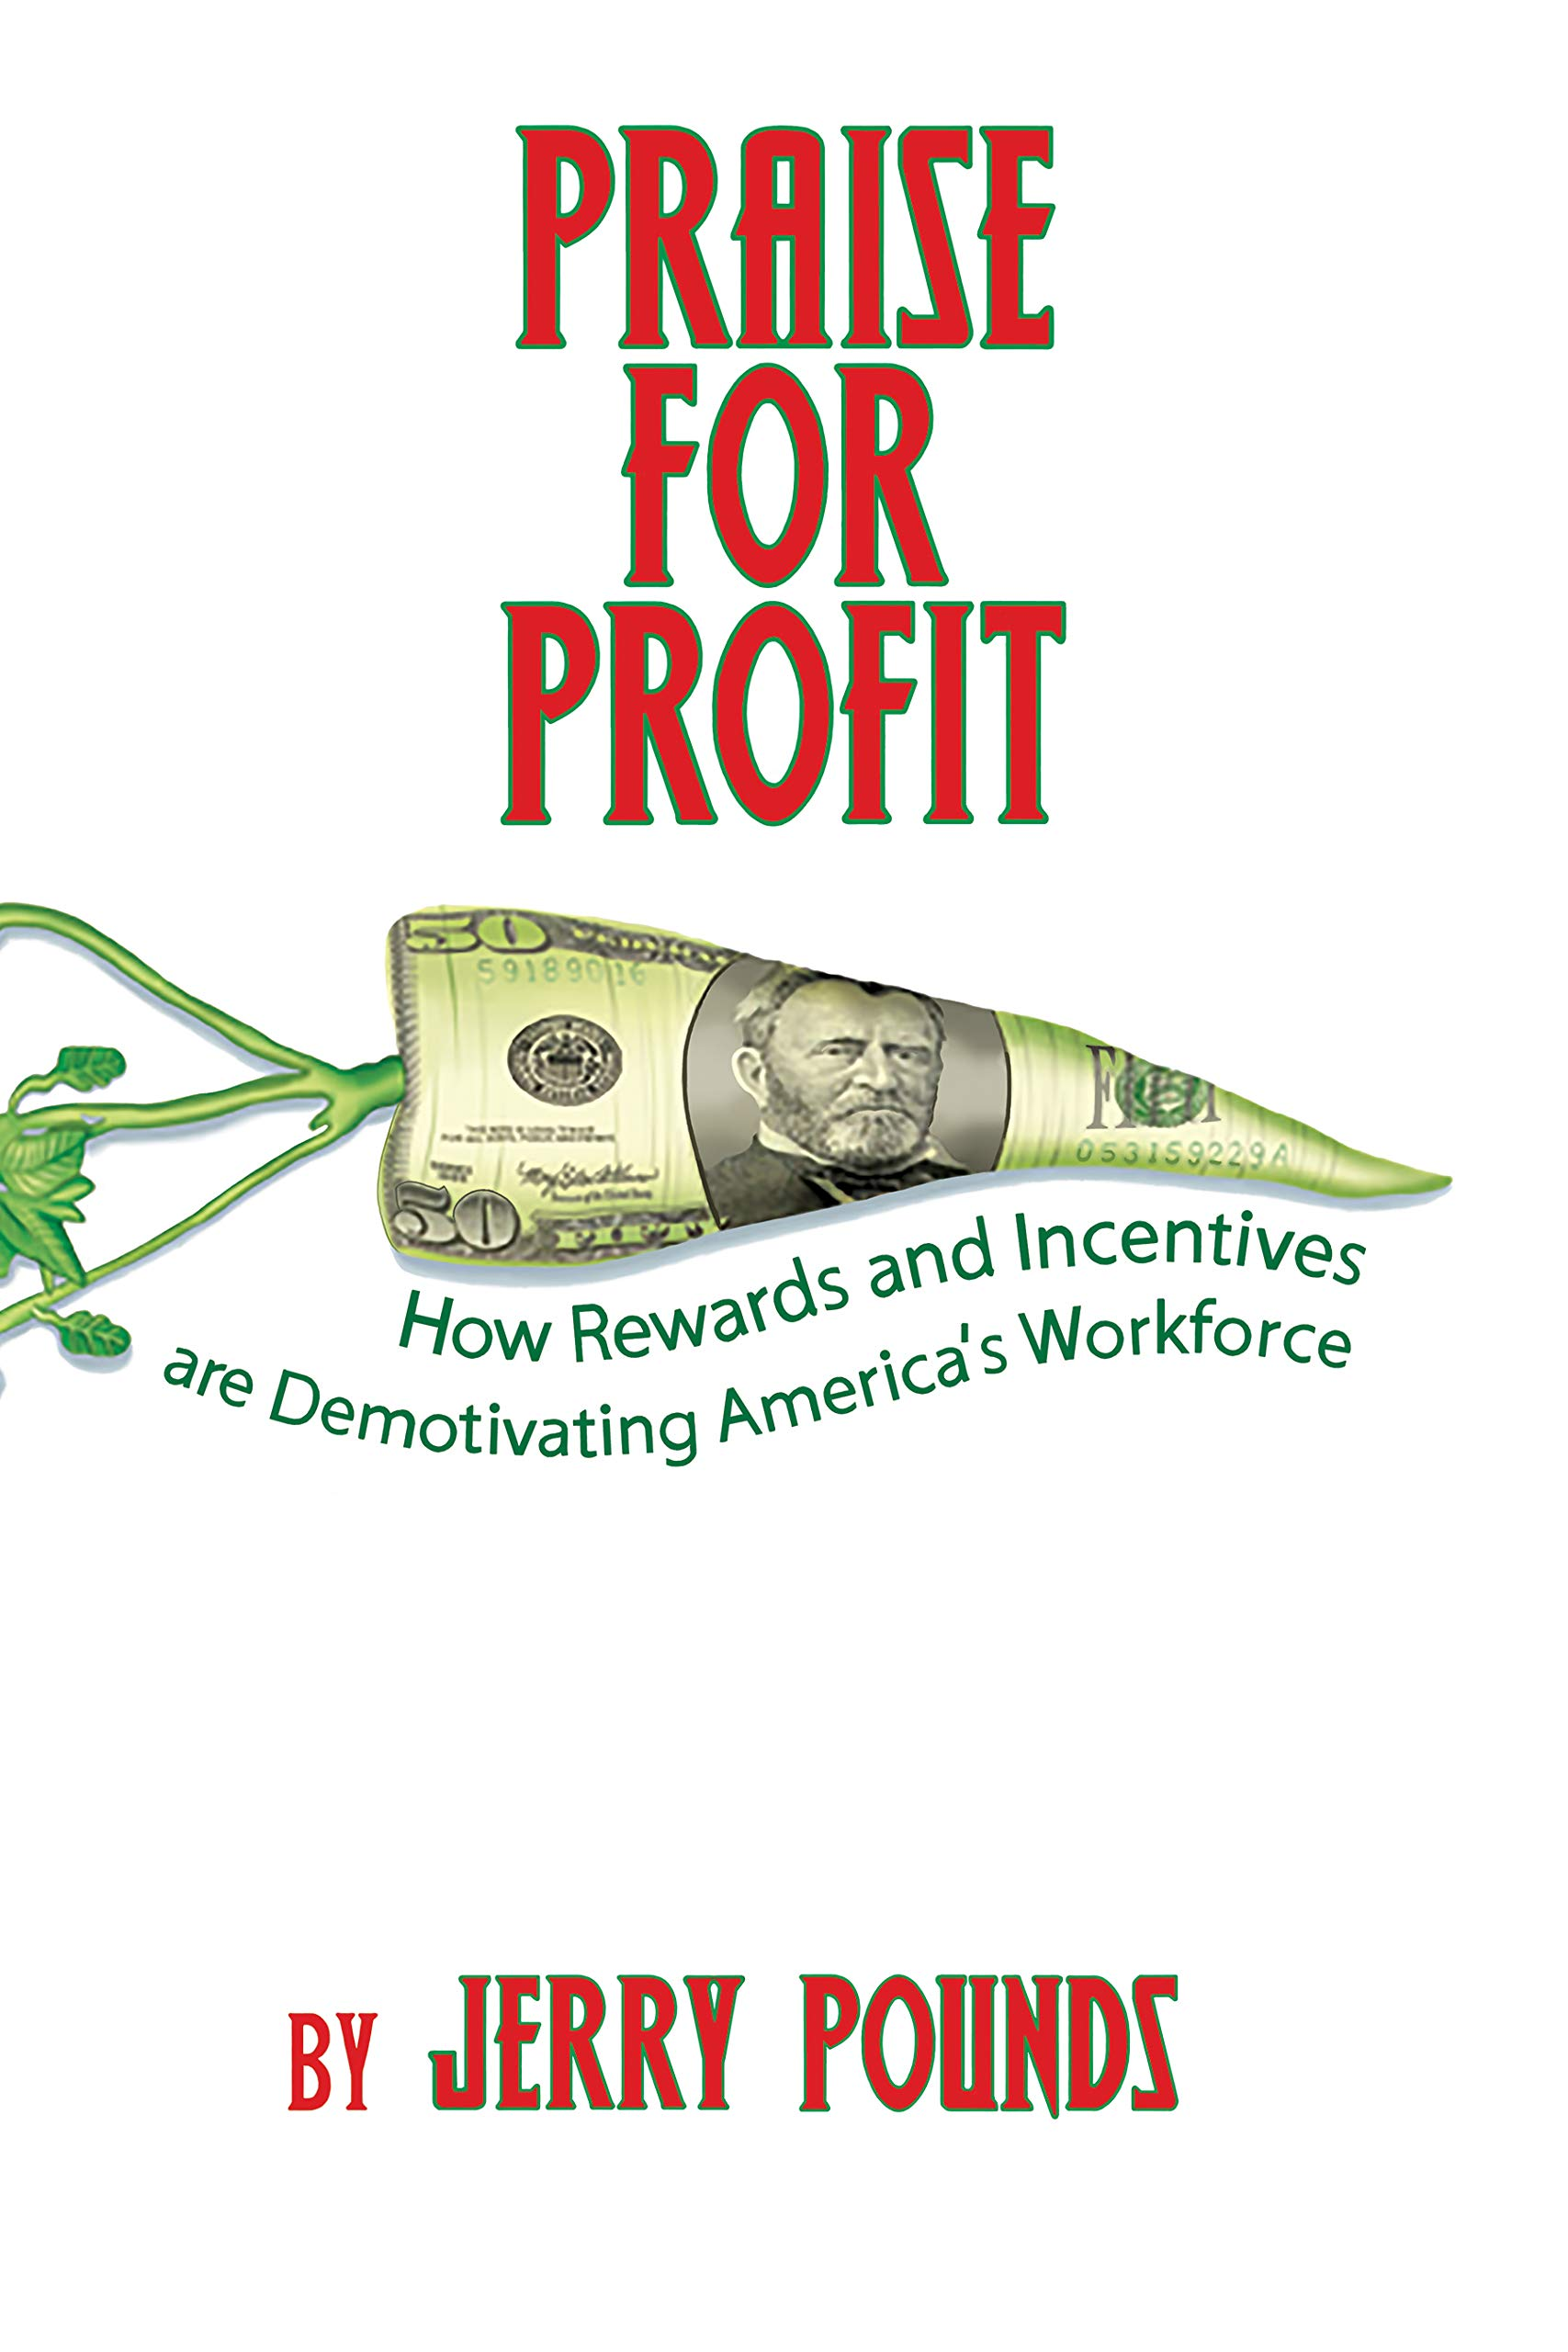 Praise for Profit: How Rewards and Incentives are Demotivating America's Workforce